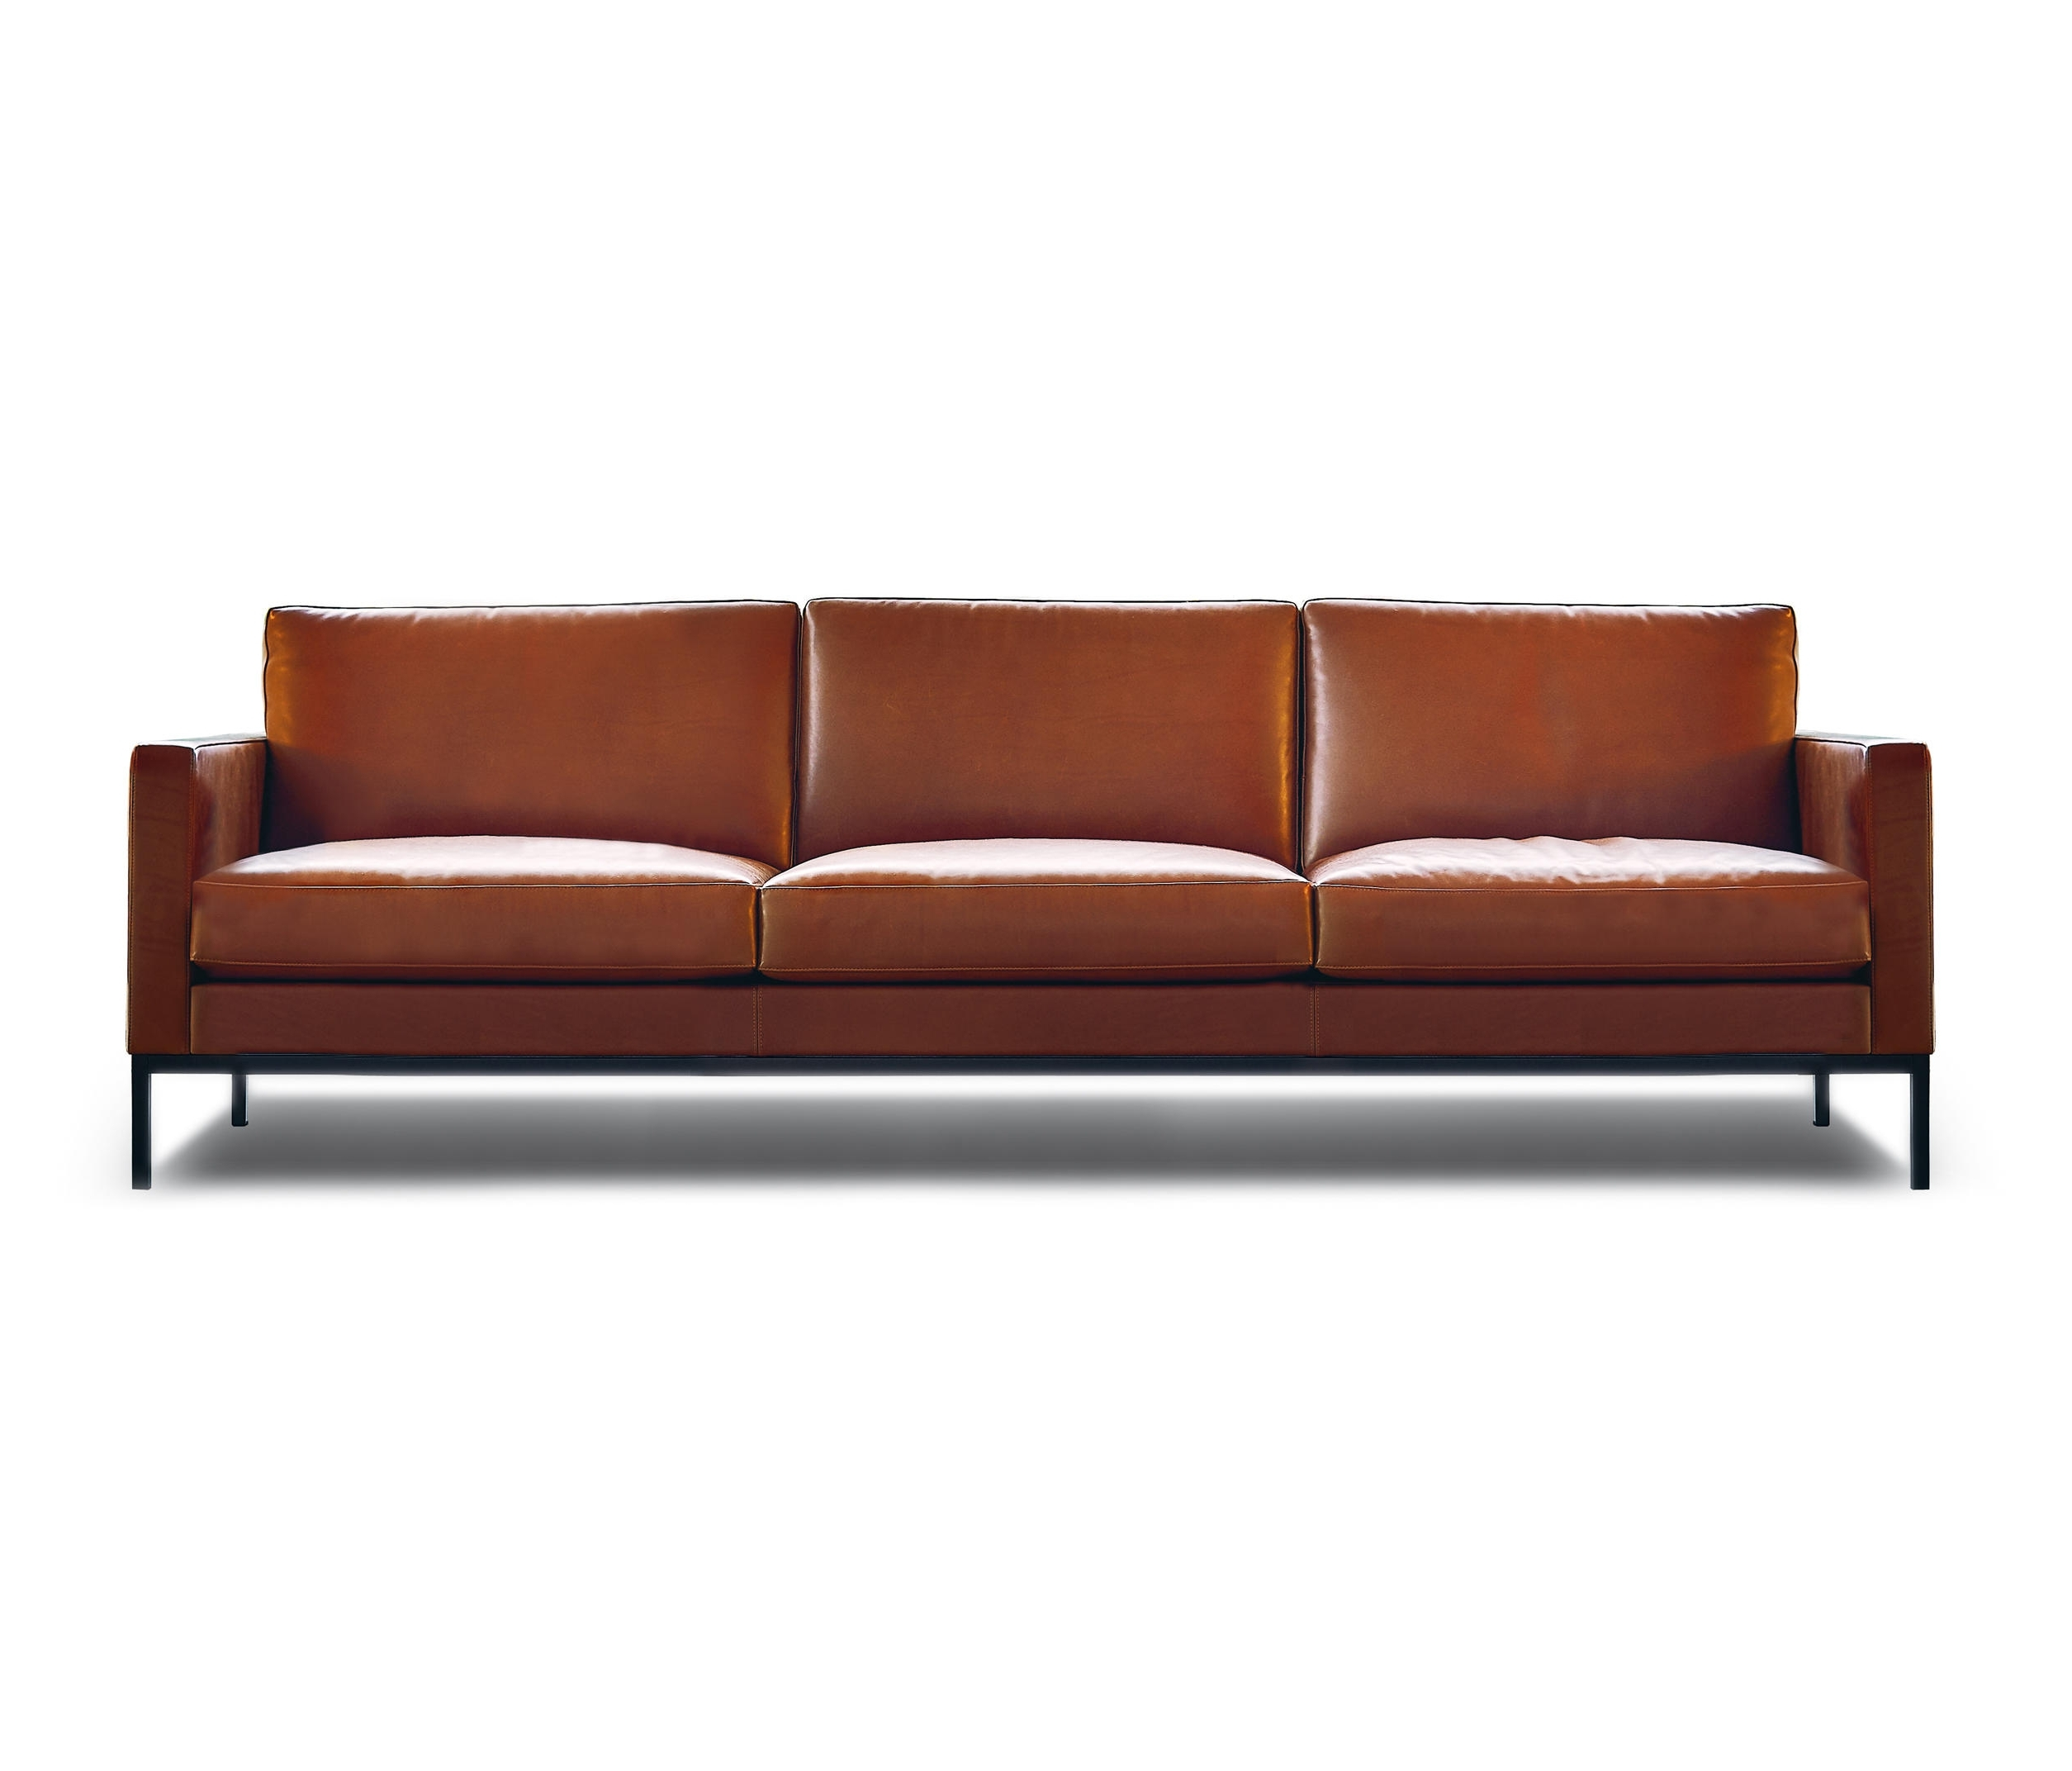 Well Known Florence Sofas And Loveseats Intended For Florence Knoll Lounge 3 Seat Sofa – Lounge Sofas From Knoll (View 14 of 15)